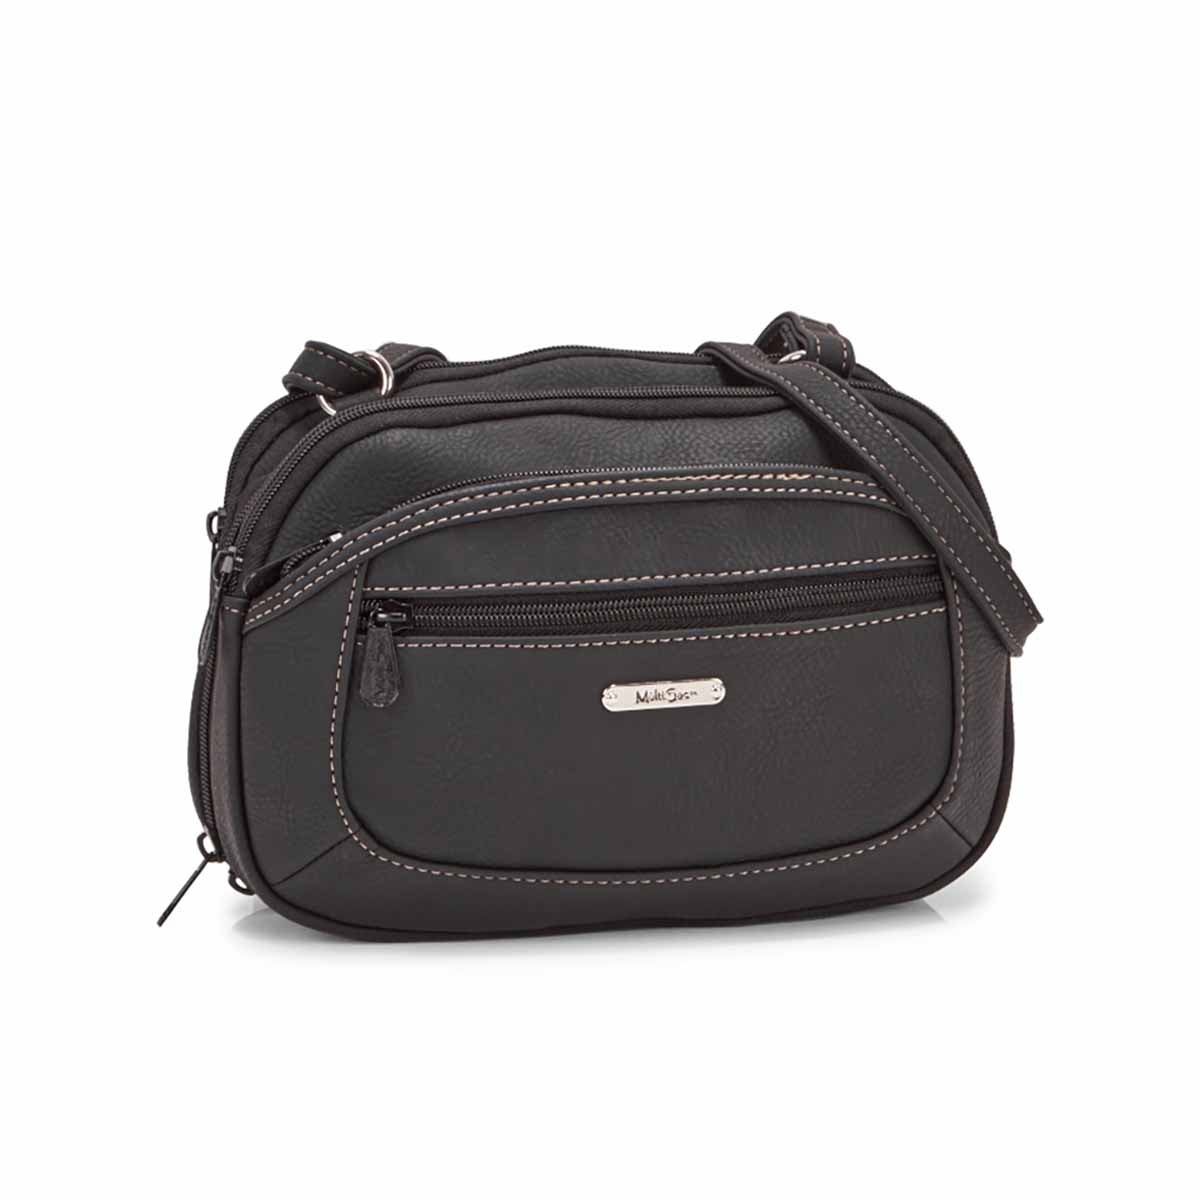 Women's TERABYTE black cross body bag